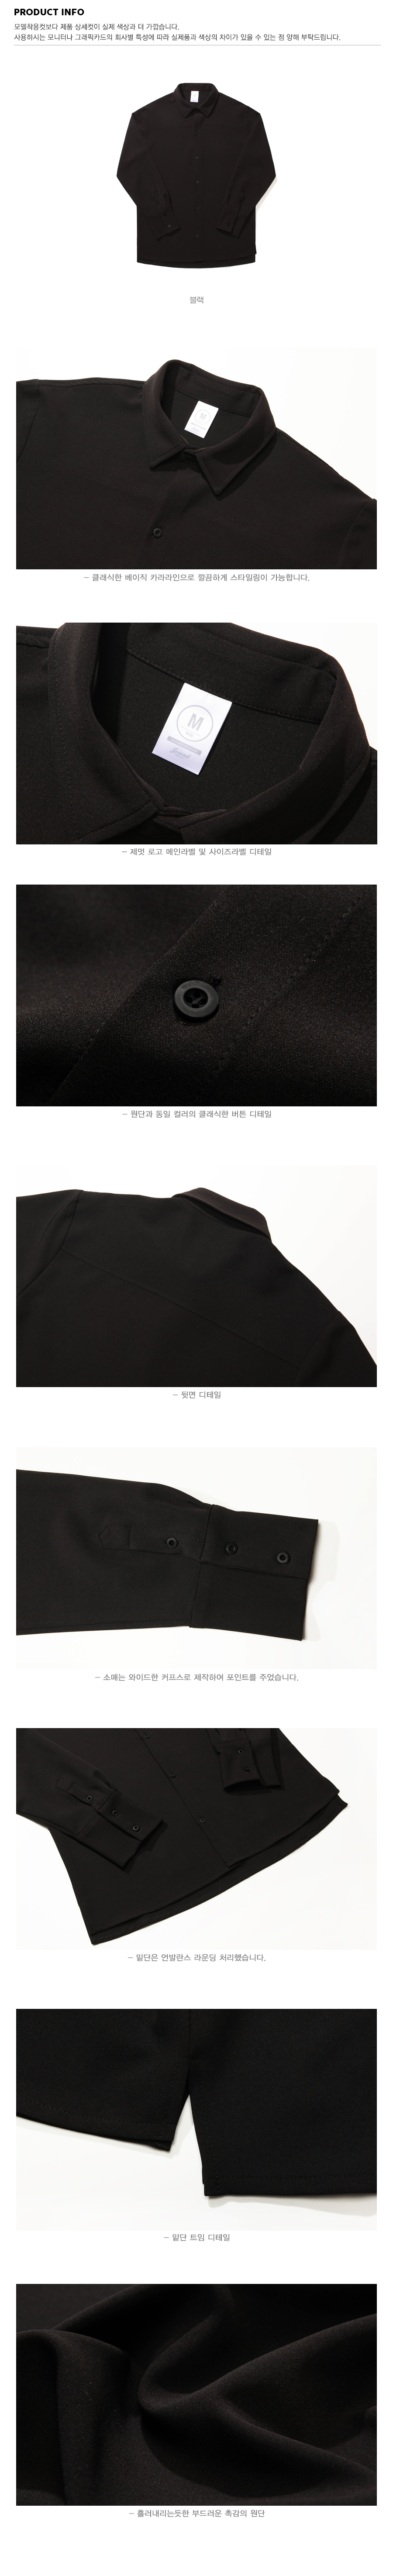 20180219_cuffs_overfit_shirts_detail_black_sy.jpg